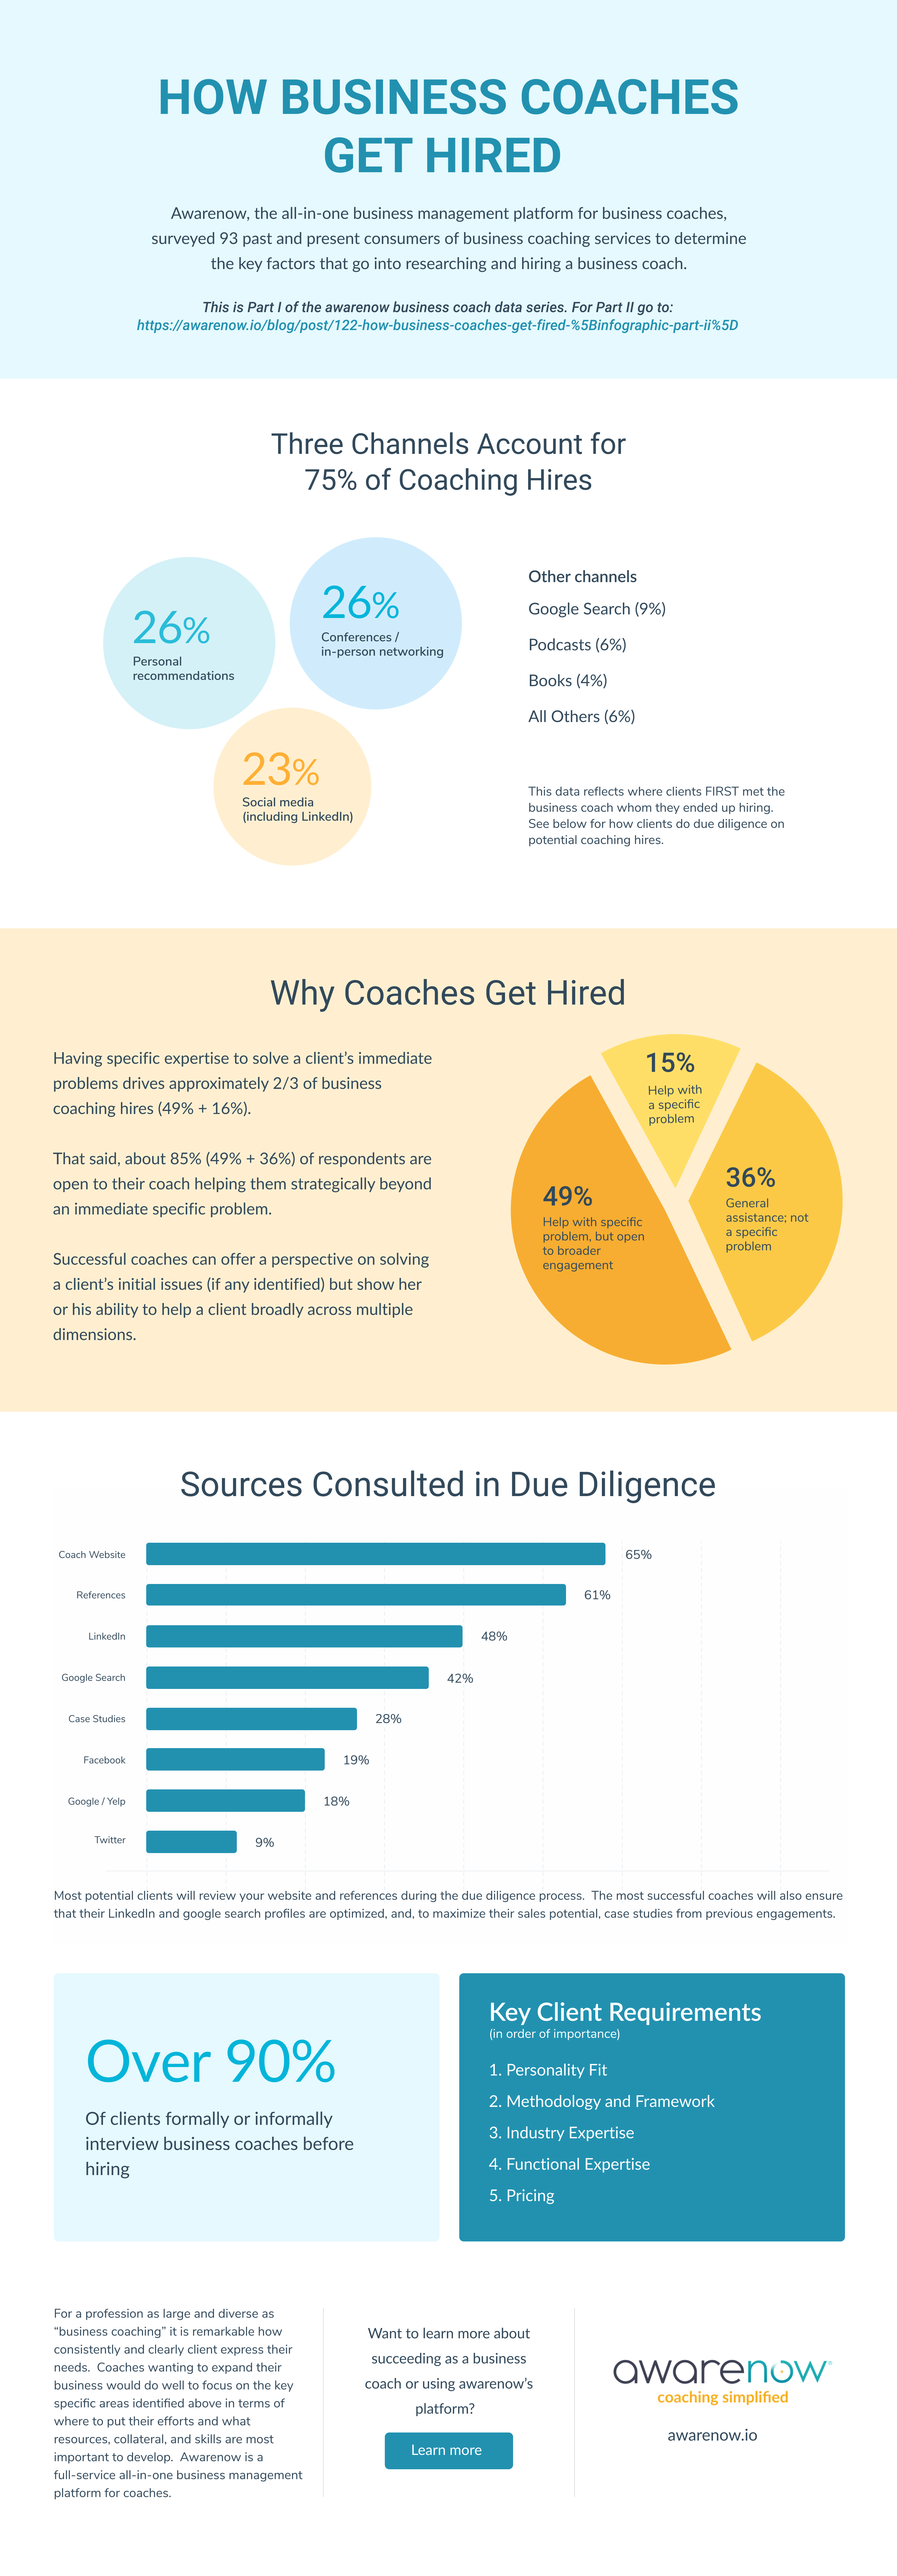 How Business Coaches Get Hired